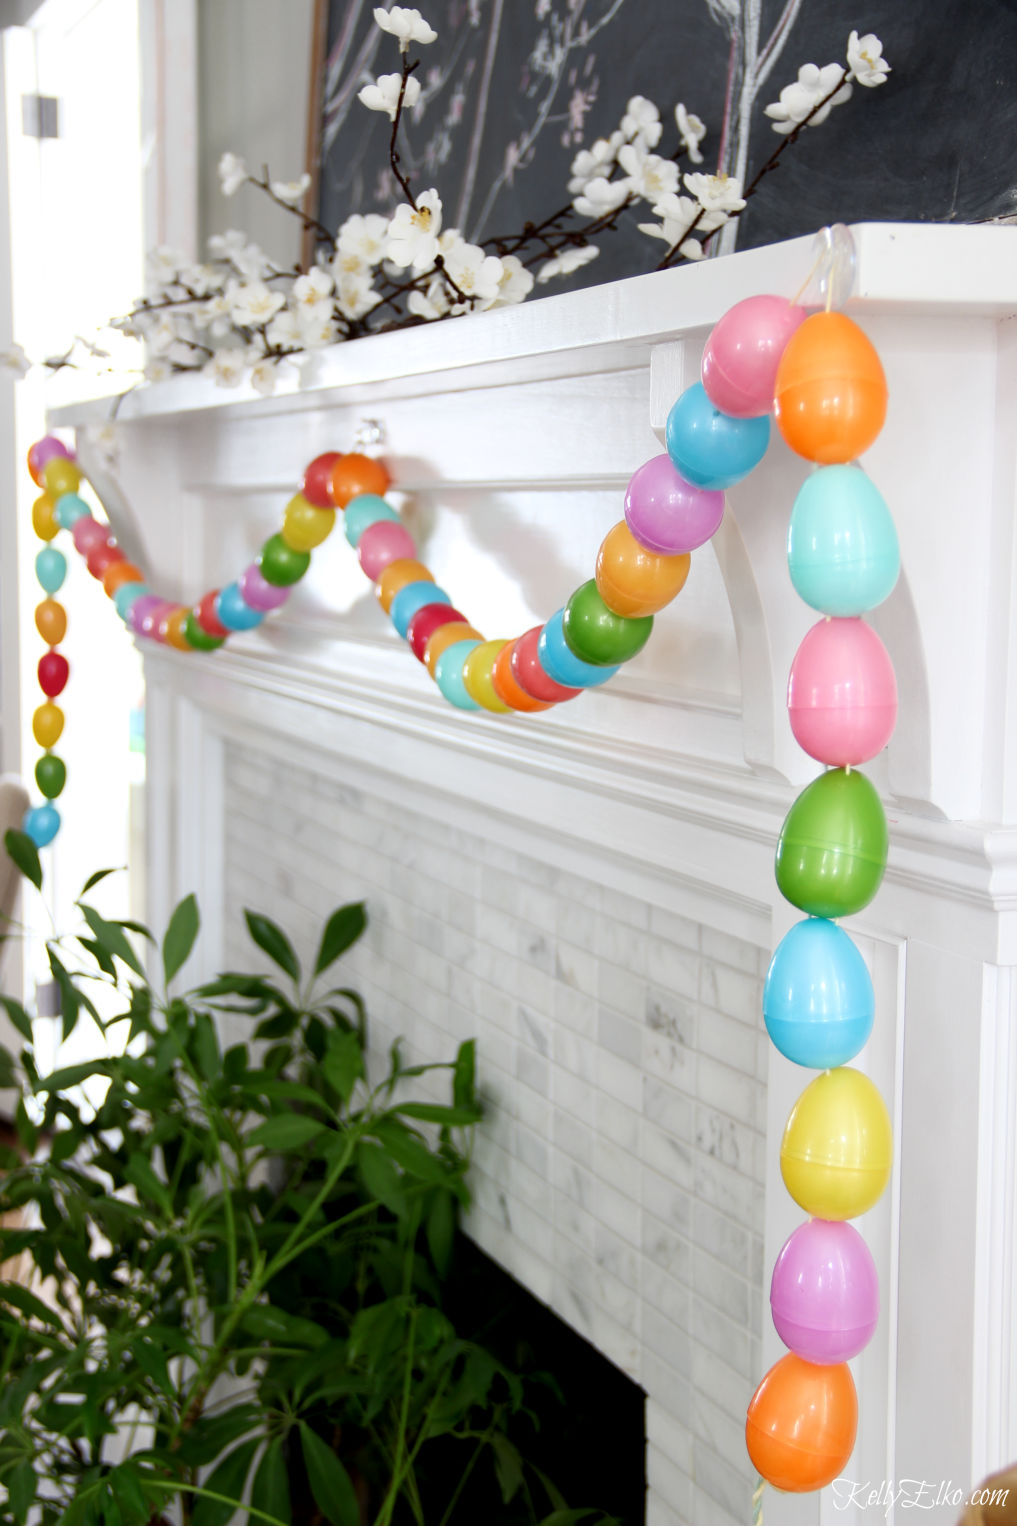 DIY Easter egg garland - love how this look on the spring mantel kellyelko.com #eastereggs #springcrafts #eastercrafts #kidscrafts #mantel #springmantel #manteldecor #crafts #crafting